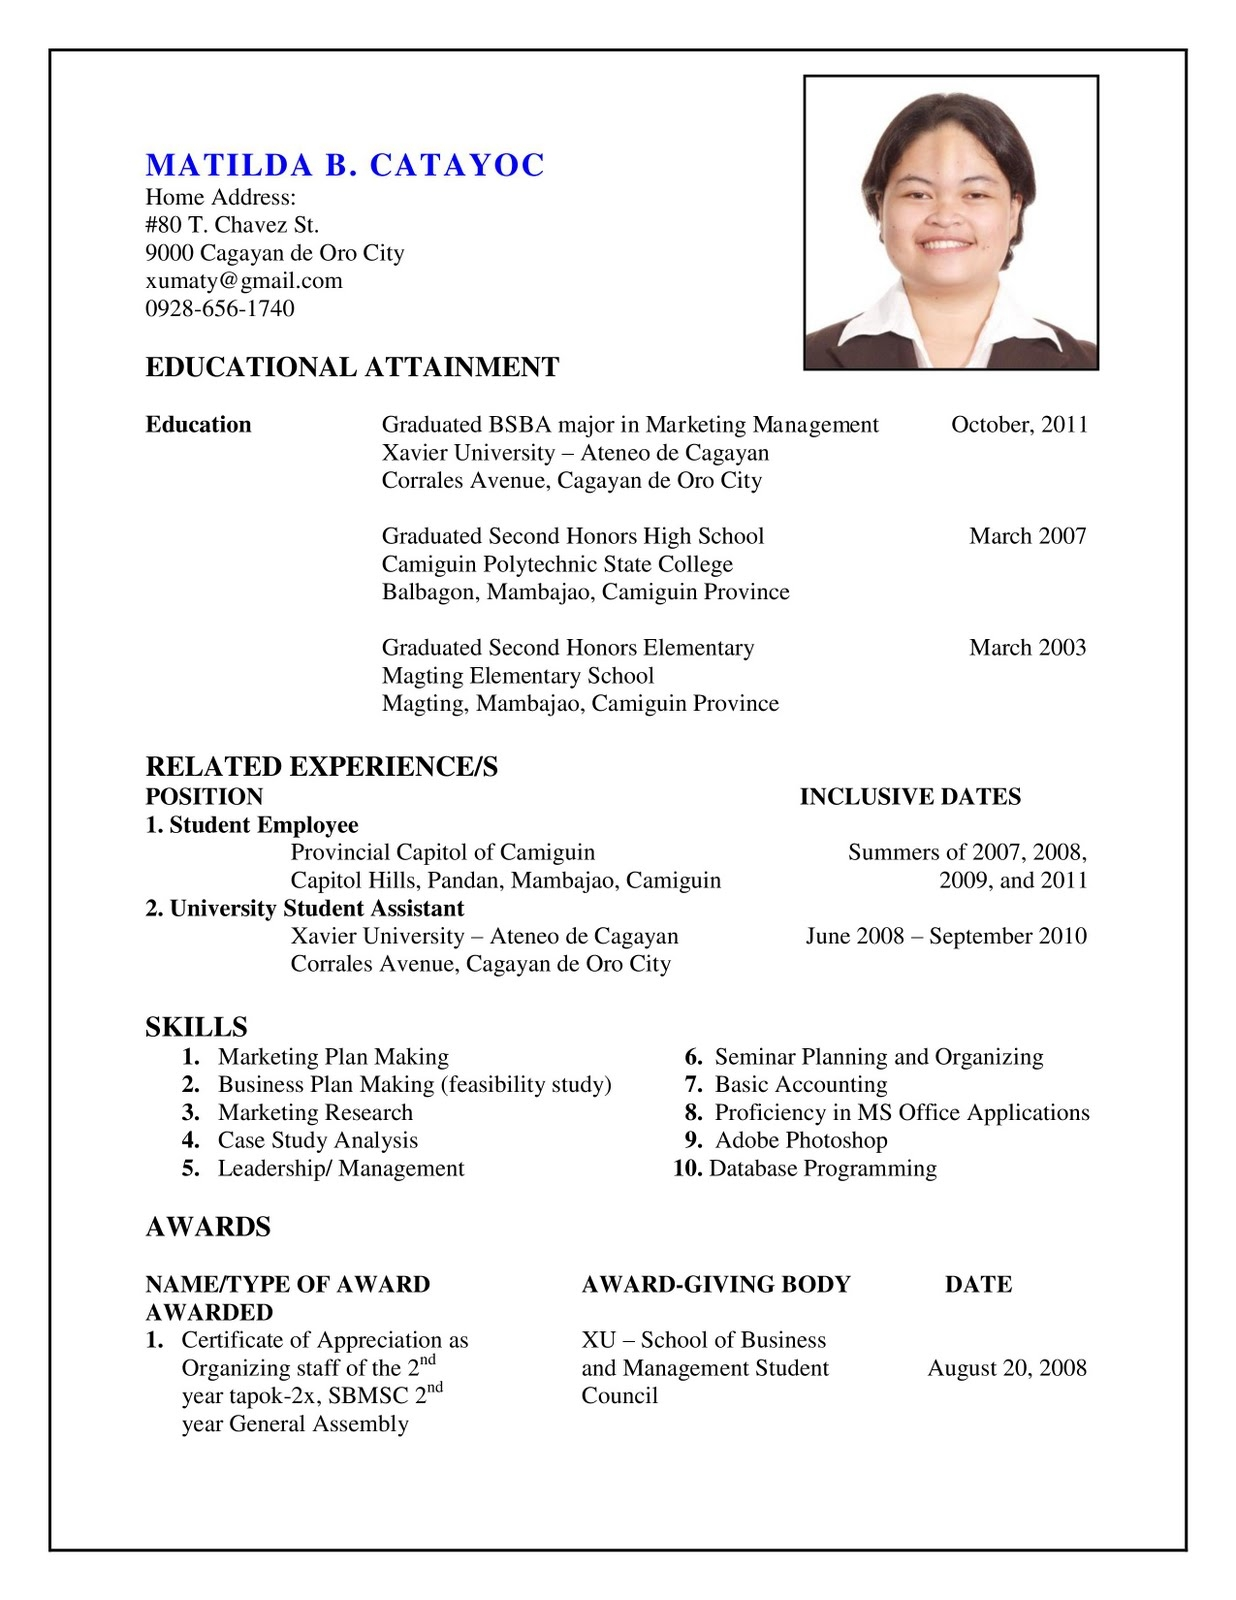 How To Do A Resume Easy How To Make A Resuma Resume For Free And Download Template How To Make An Resume how to do a resume|wikiresume.com